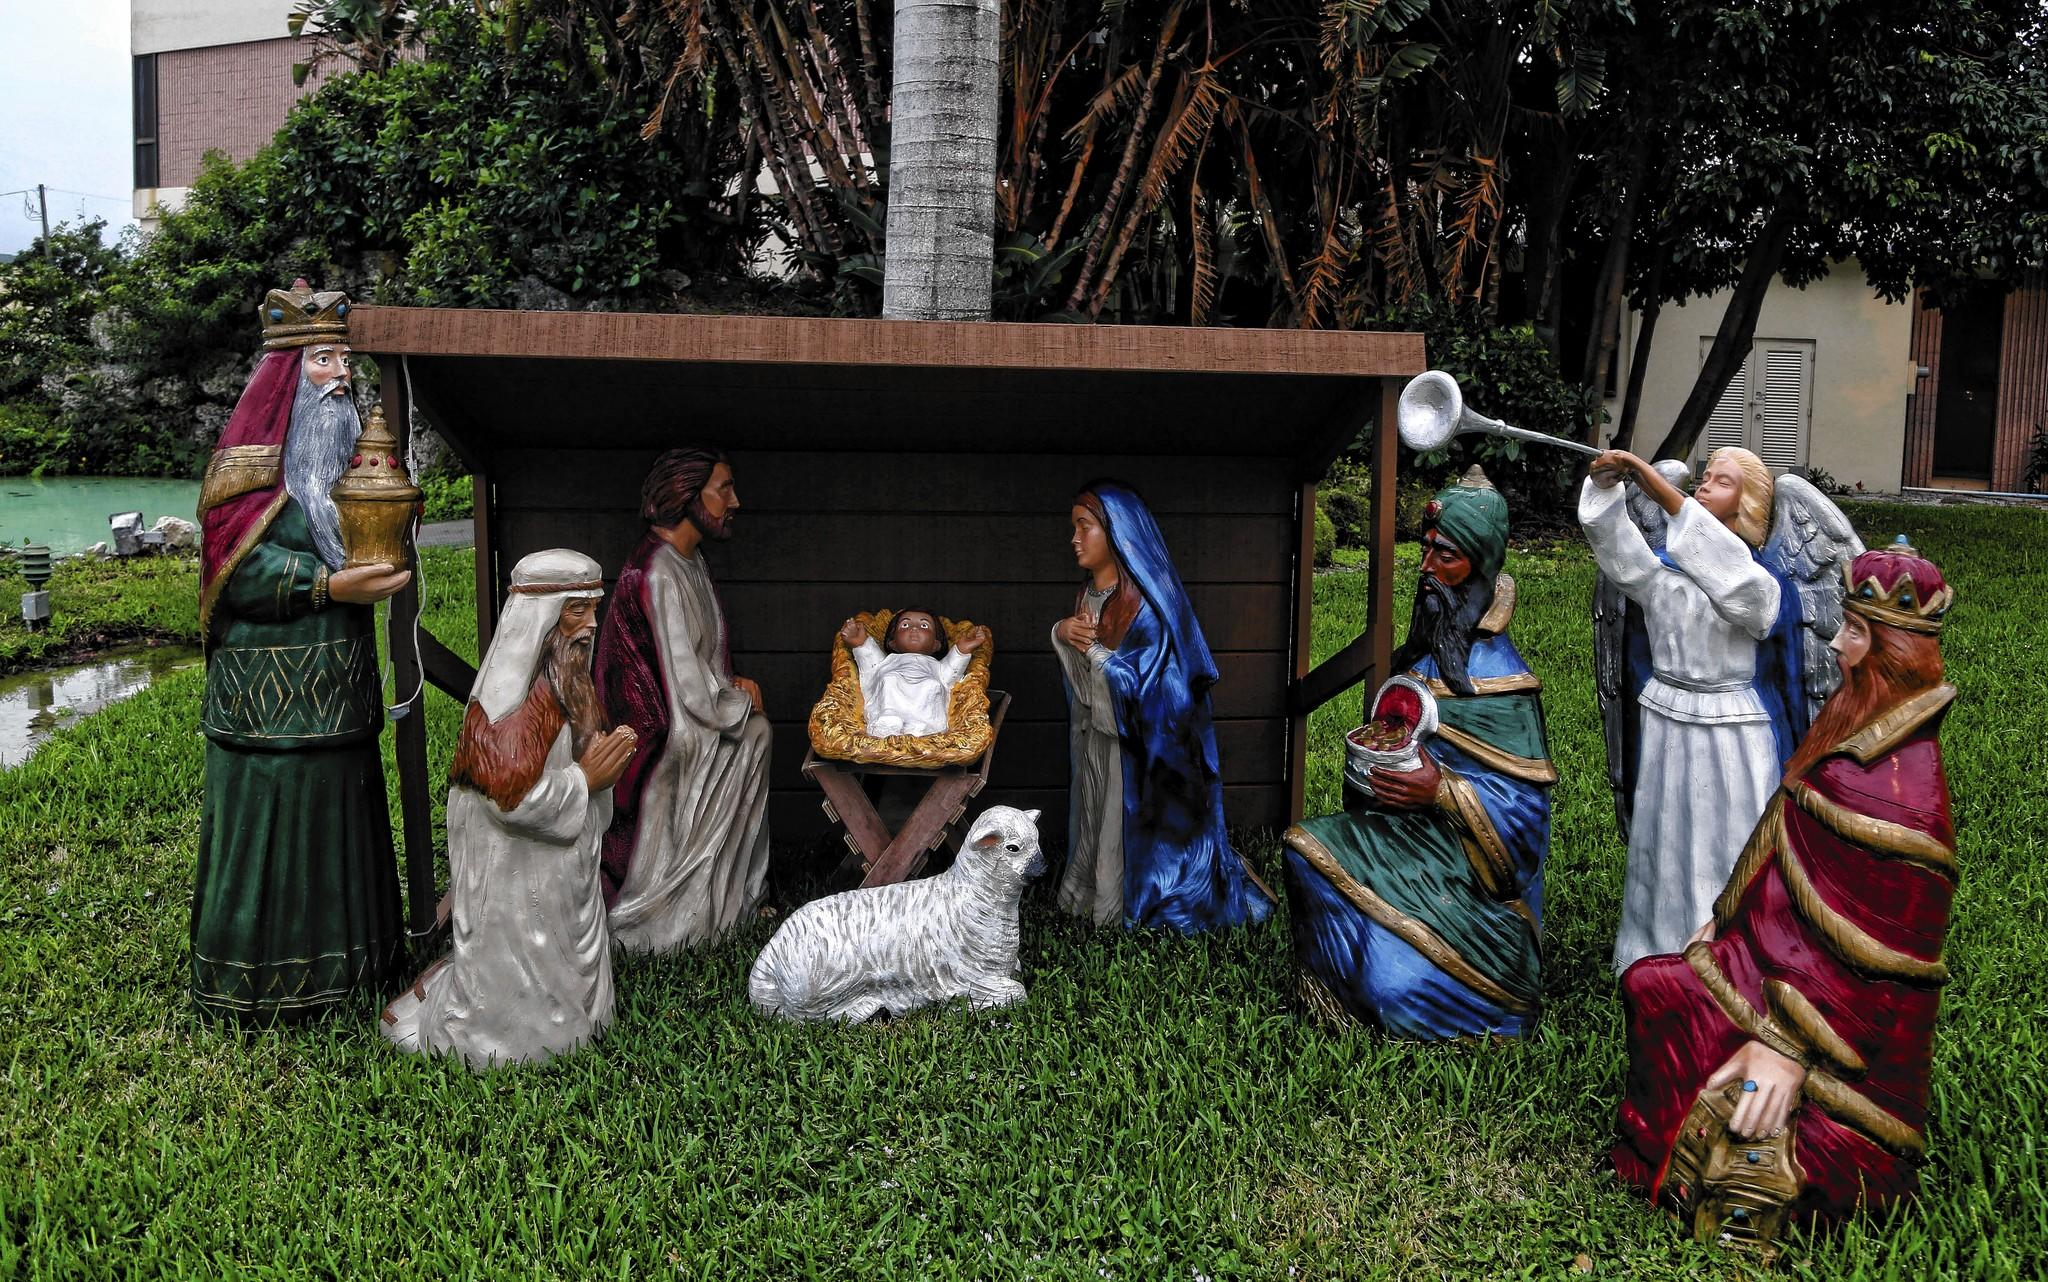 Deerfield Beach puts up nativity at mayor's behest